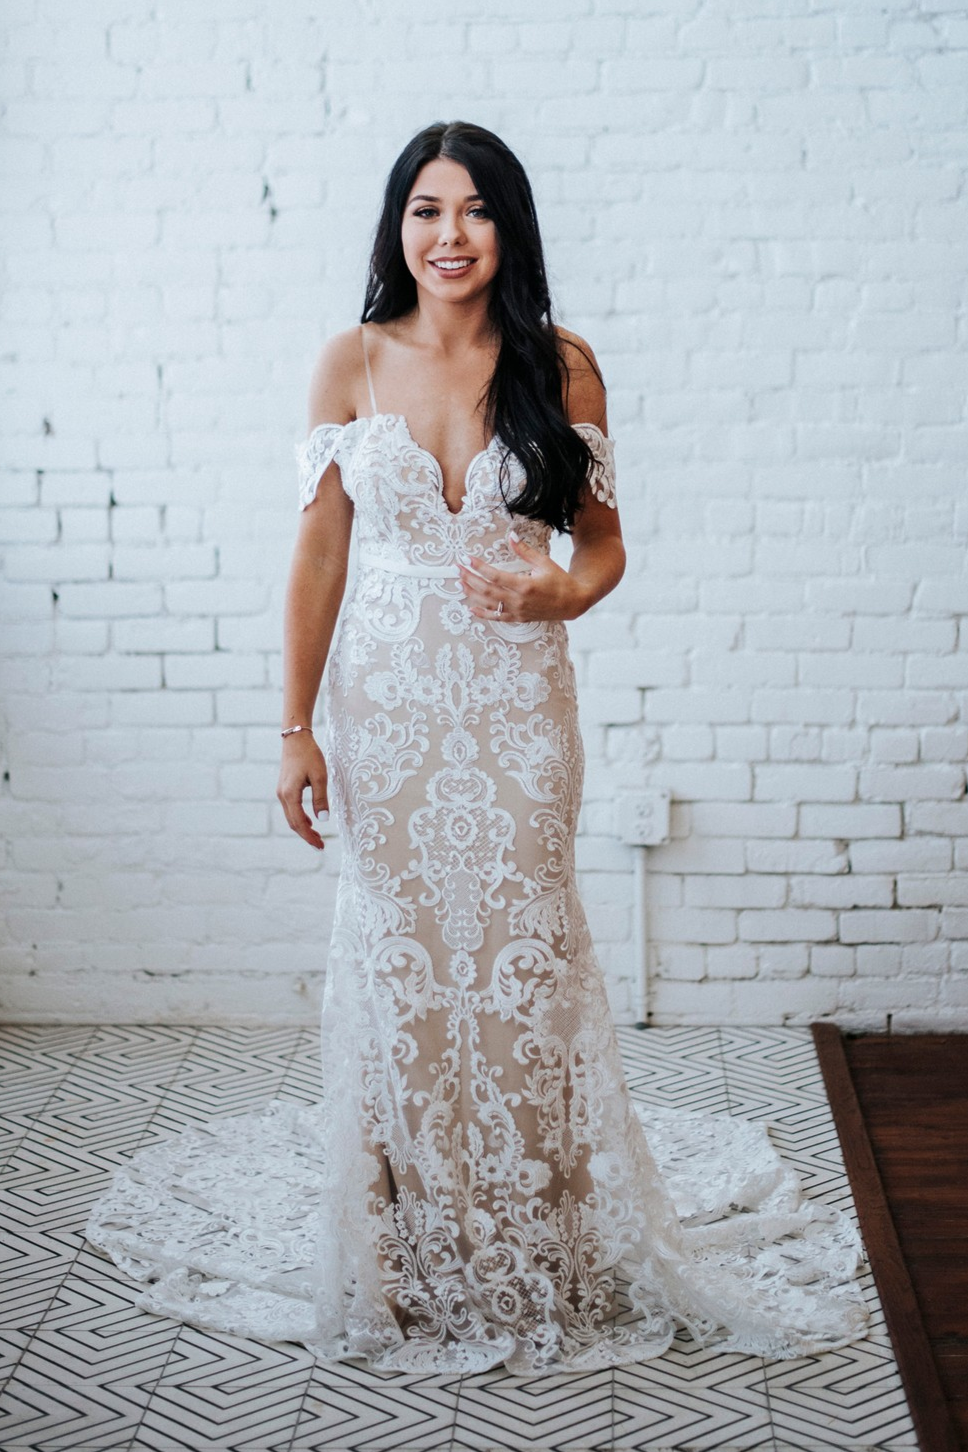 Thalia Bridal Gown Exclusive Luxe Collection Goddess By Nature Boho Wedding Dress Lace Australian Wedding Dresses Wedding Dresses [ 1452 x 968 Pixel ]